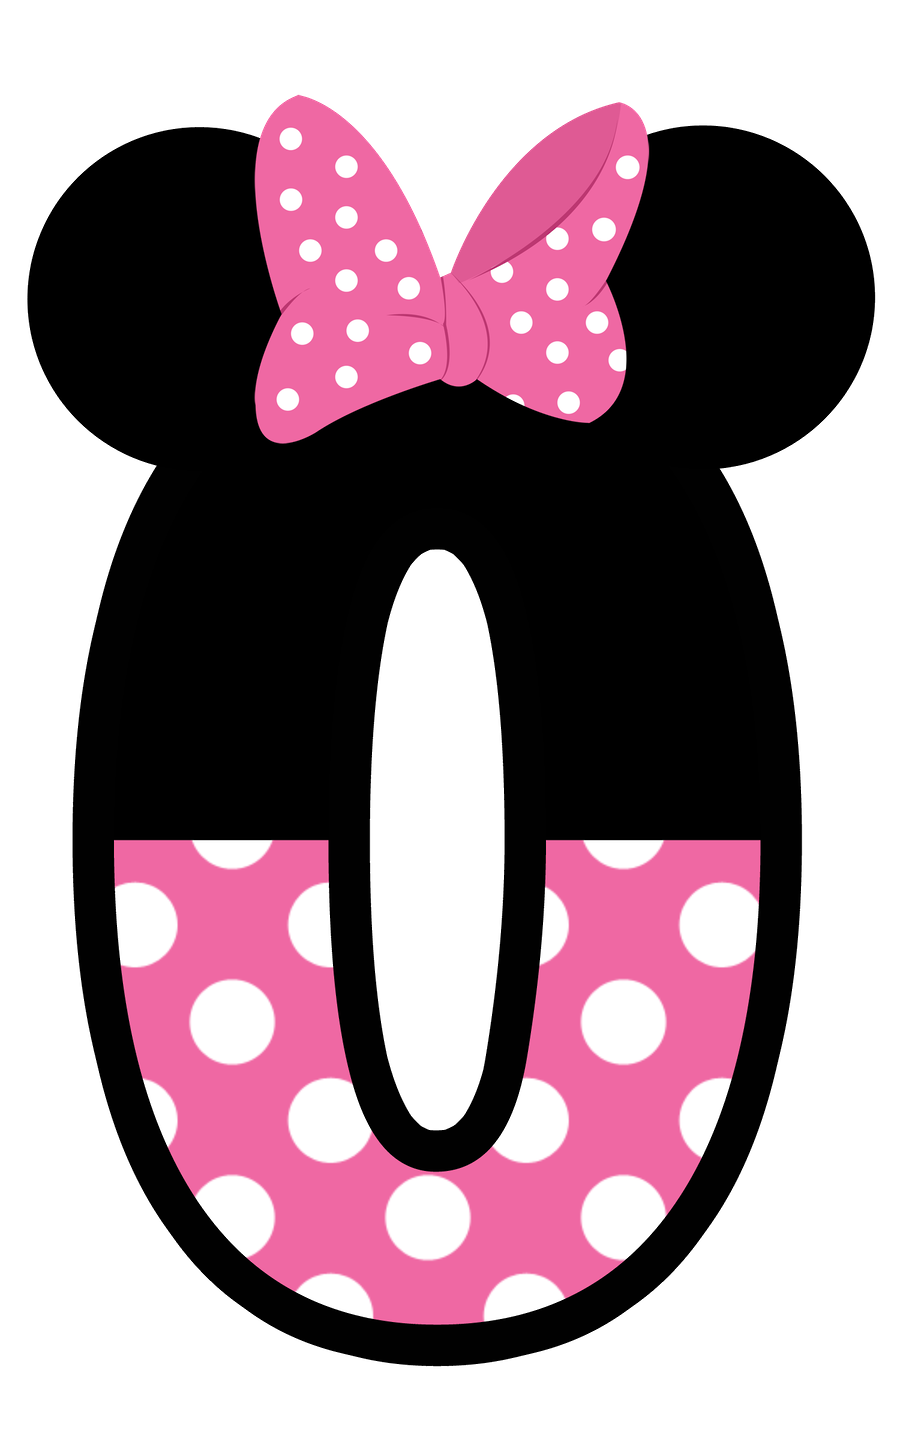 Letras mickey mouse png. Minus say hello pinterest